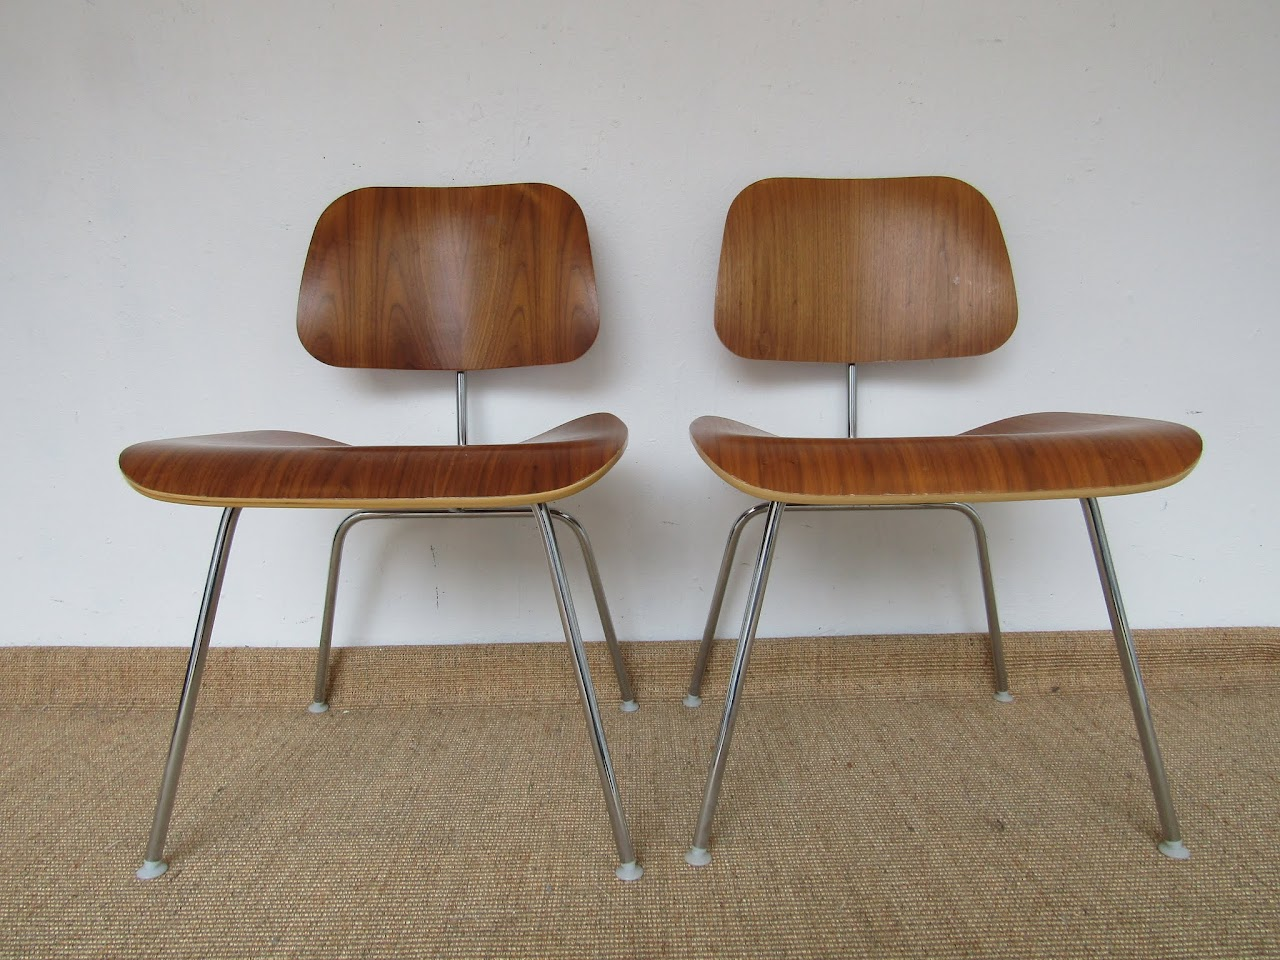 Eames Molded Plywood Chair Pair (2)